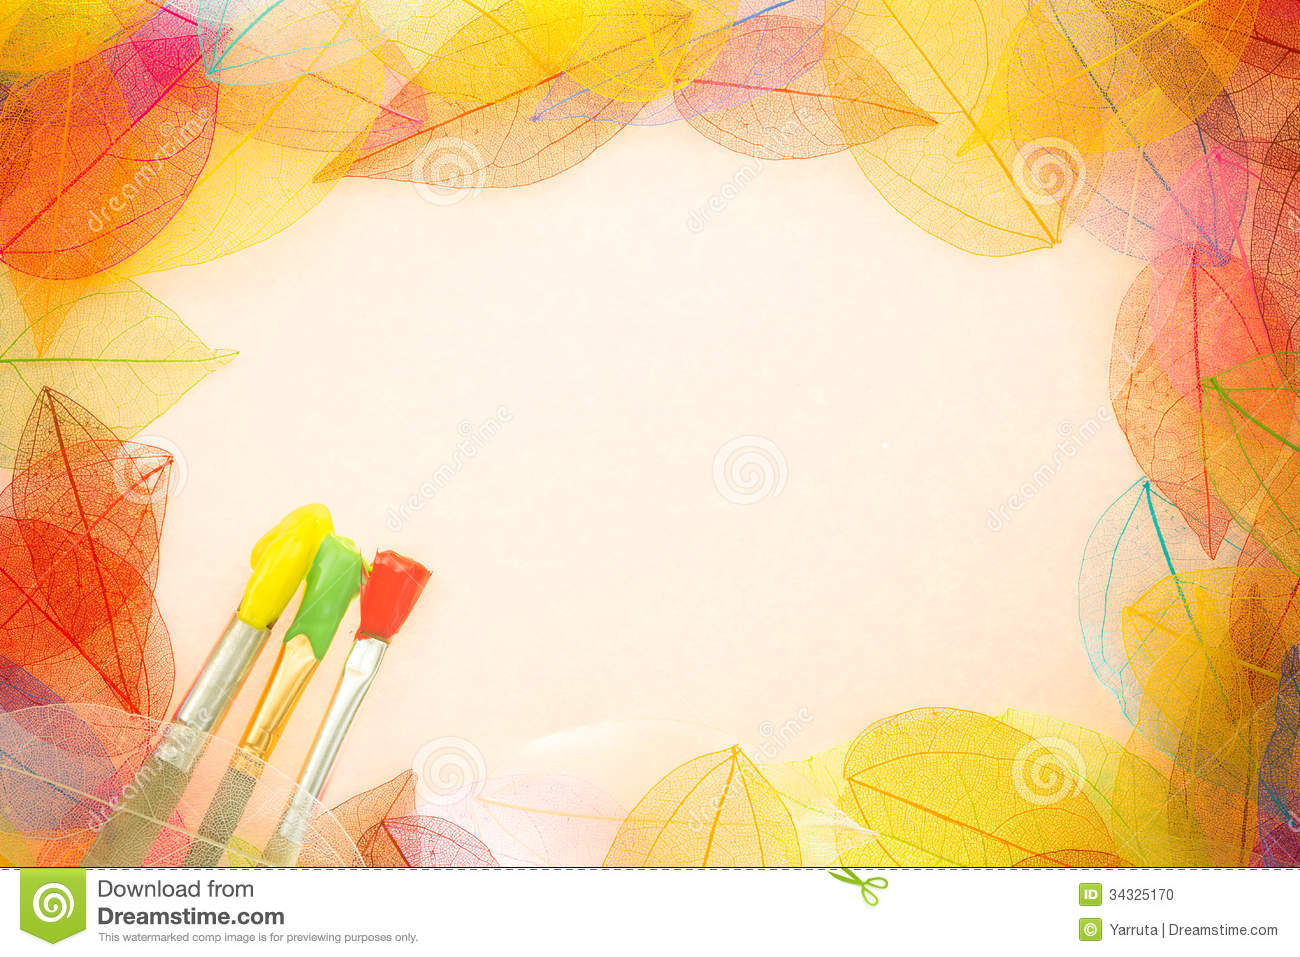 Download 60 Background Art Images HD Gratis